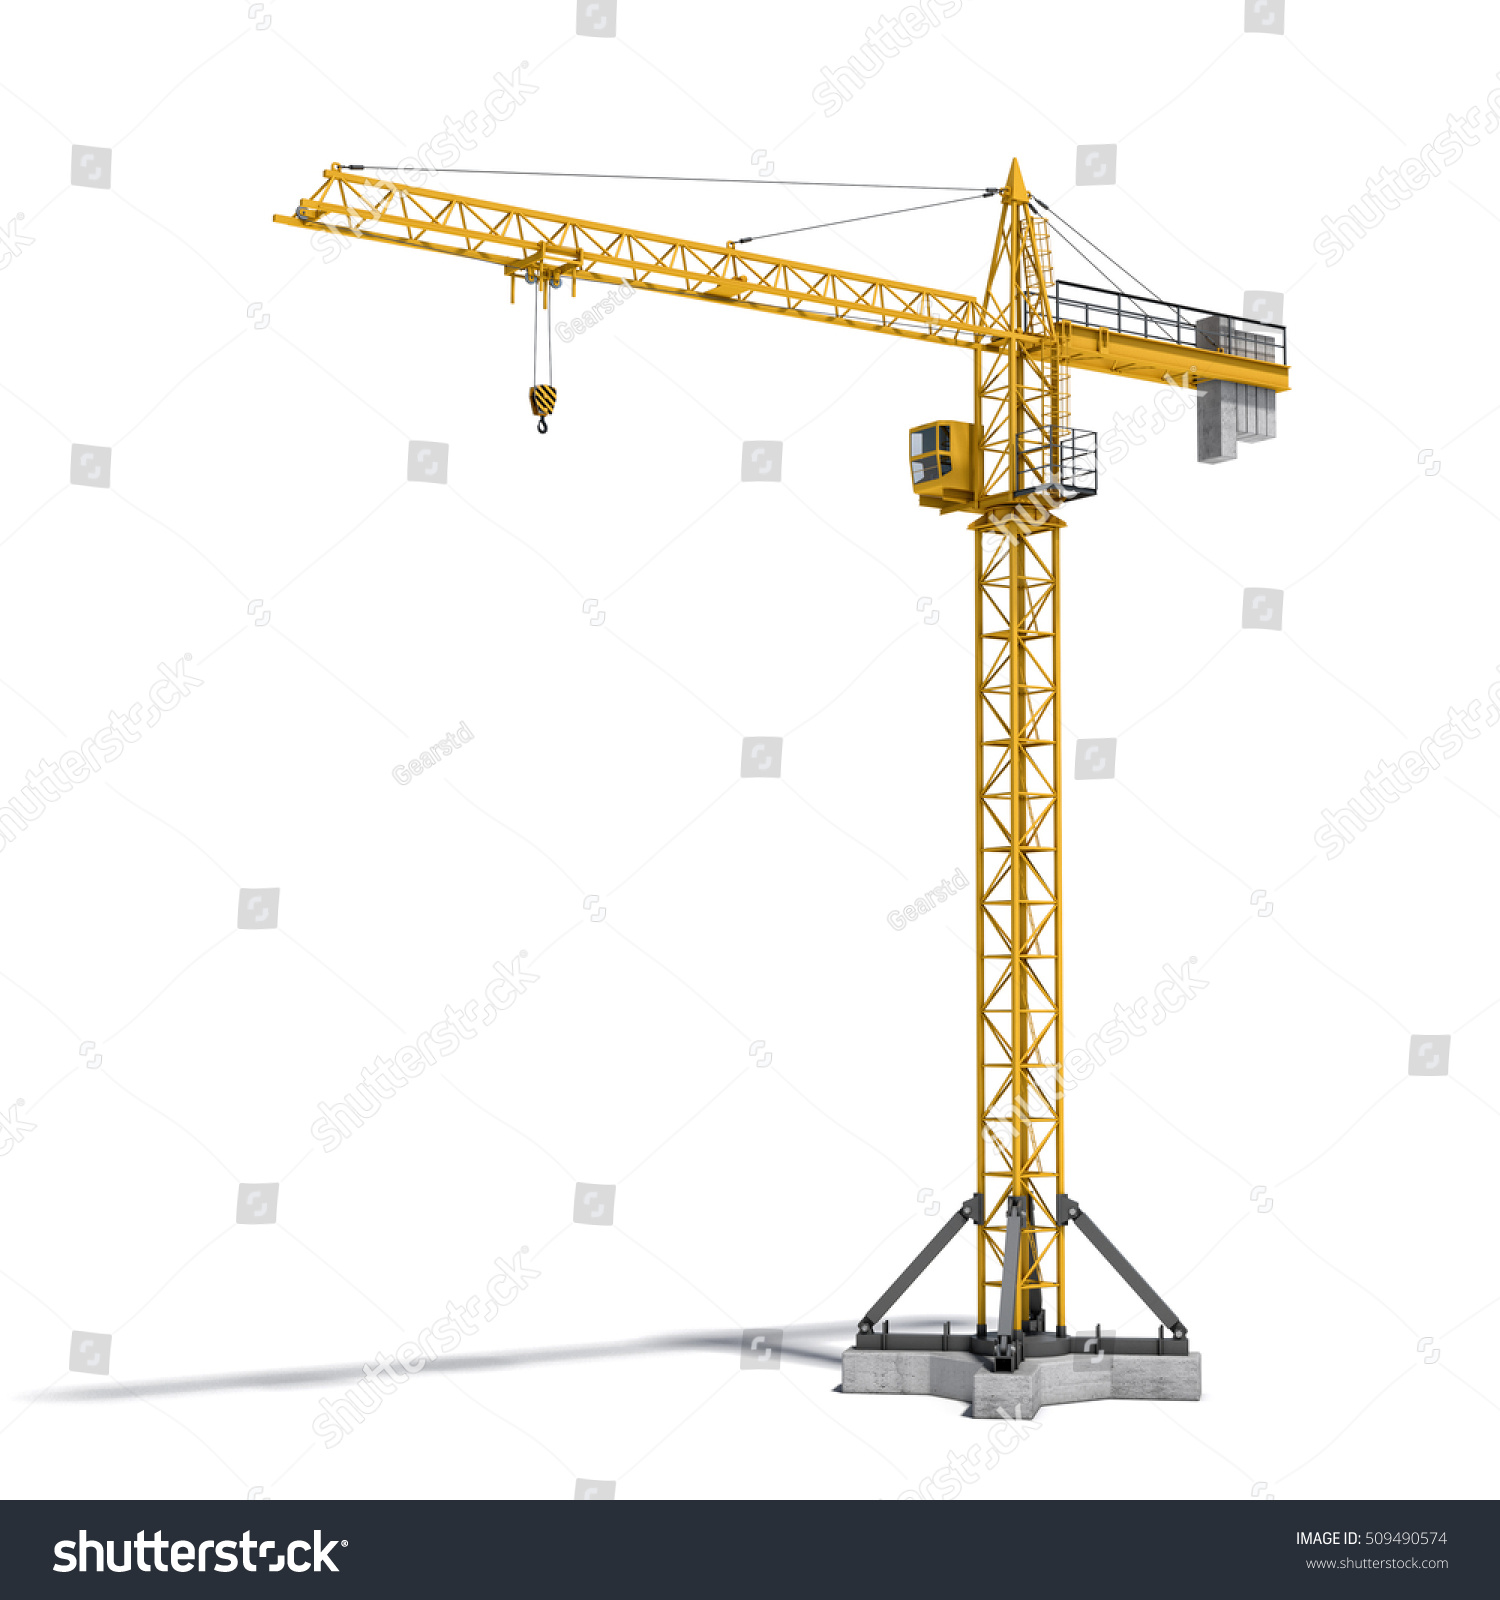 Tower Crane Design : D rendering yellow tower crane fullheight stock